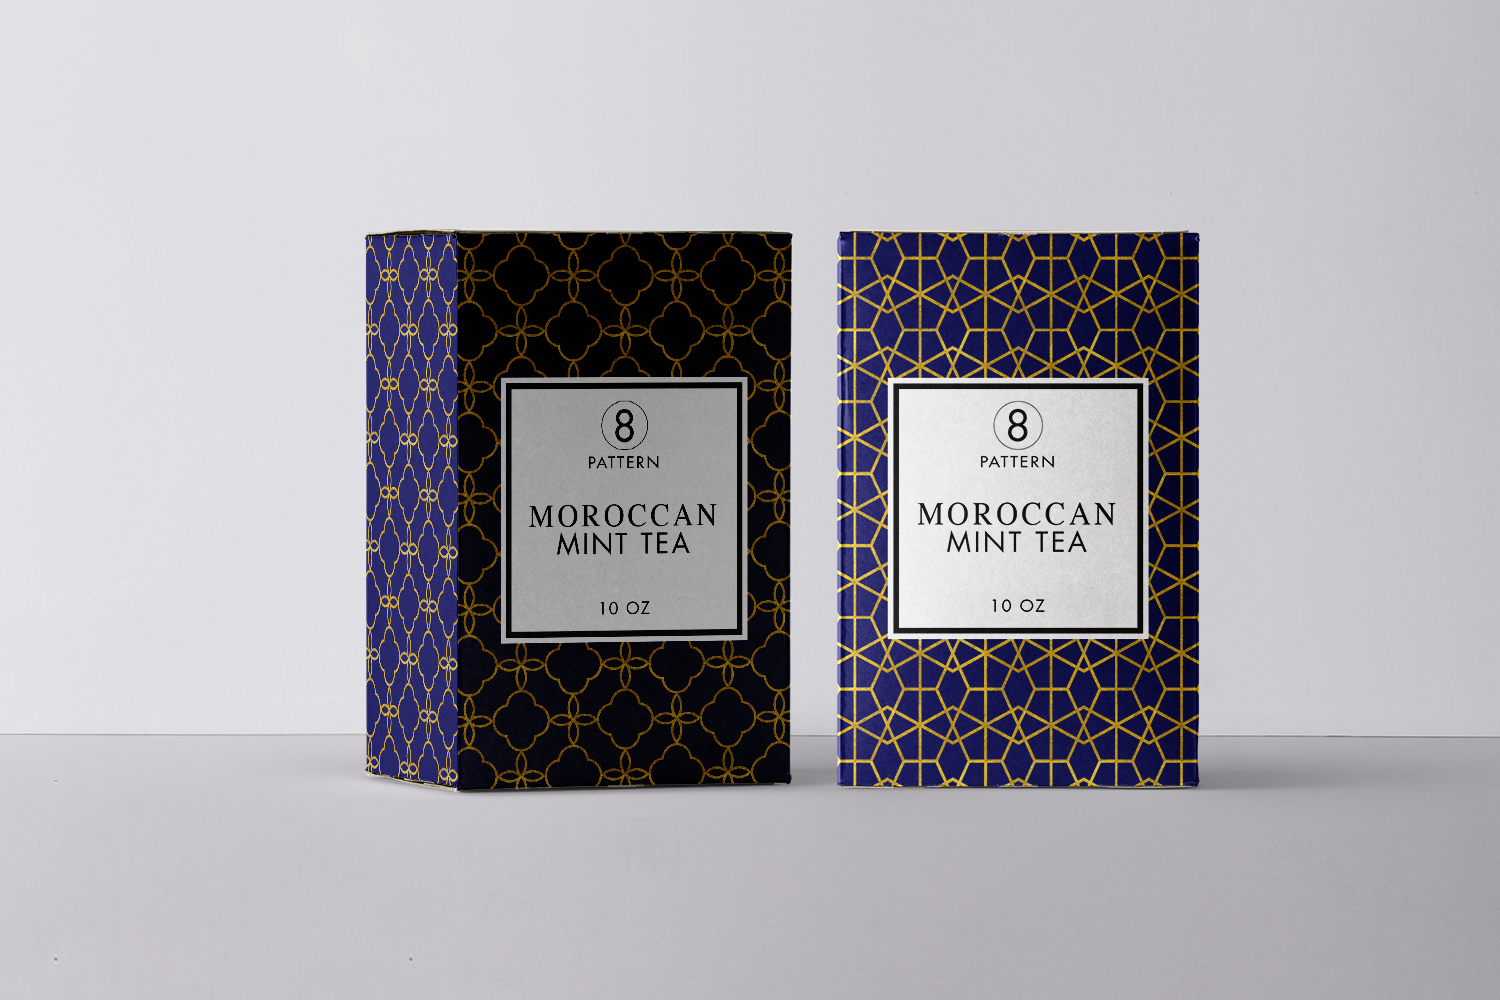 8 Seamless Moroccan Patterns - Gold & Cobalt Blue Set 2 example image 3